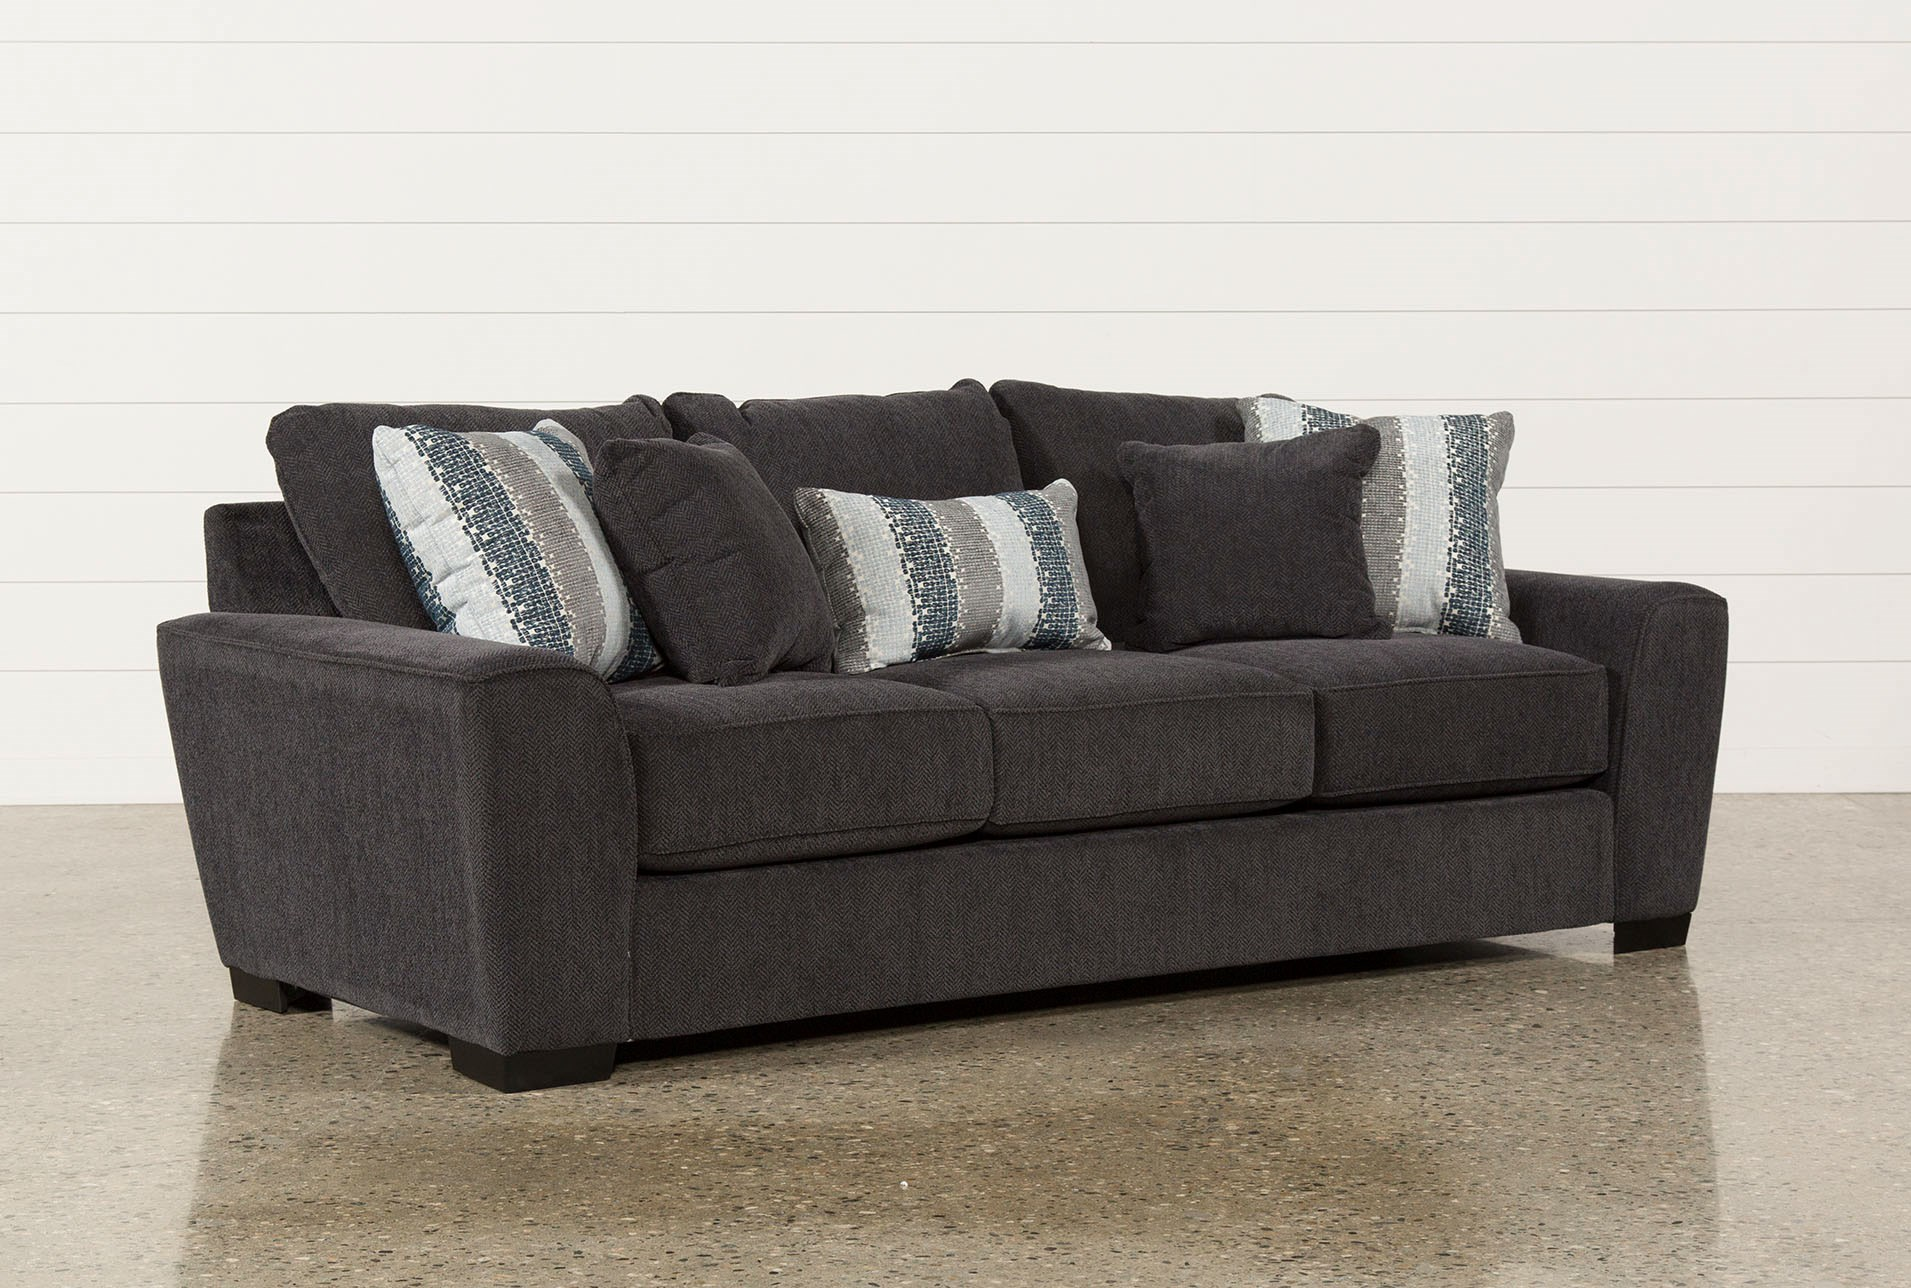 Parker Queen Sleeper Living Spaces ~ Queen Sleeper Sofa Dimensions When Open